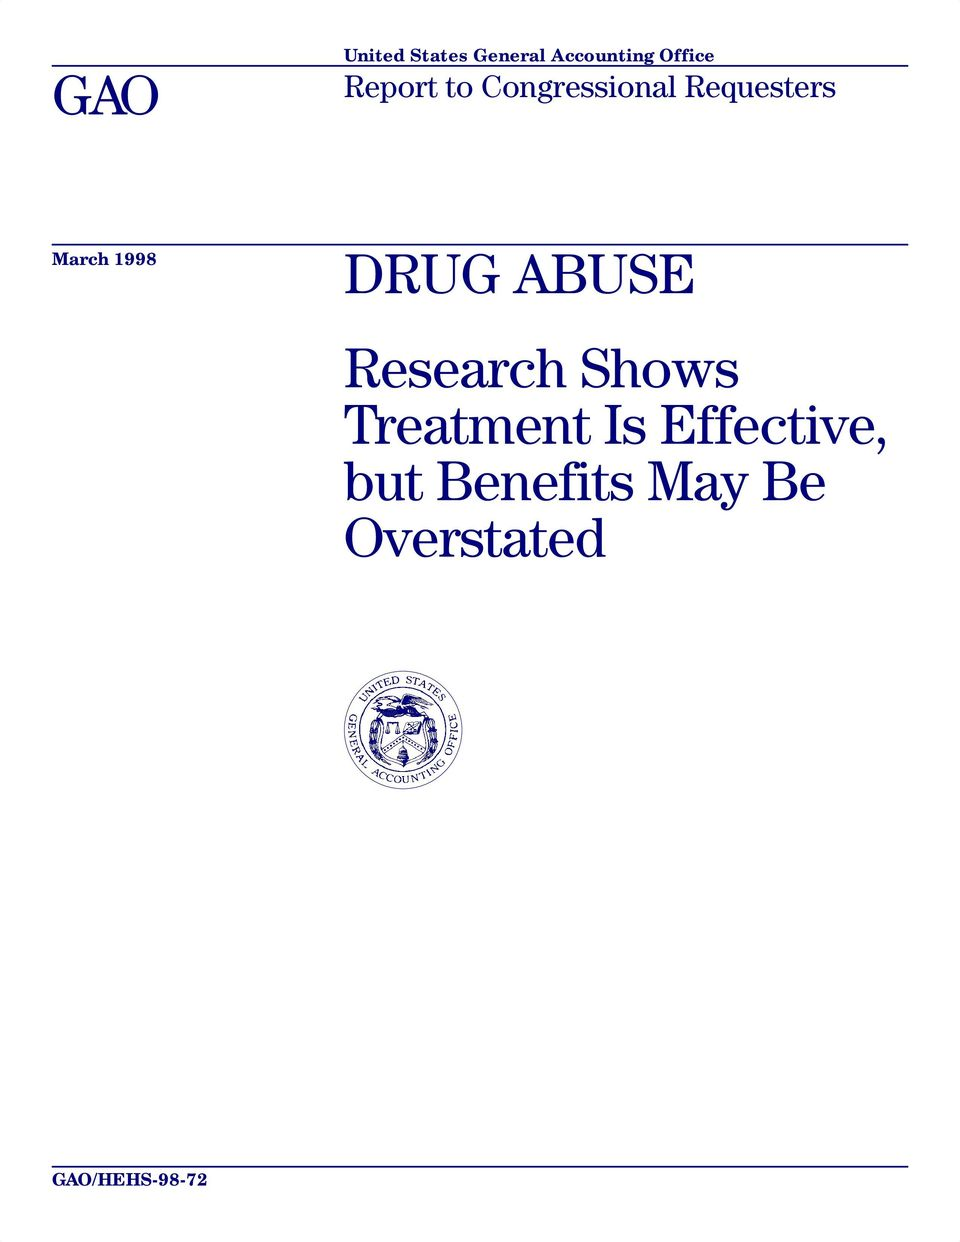 DRUG ABUSE Research Shows Treatment Is